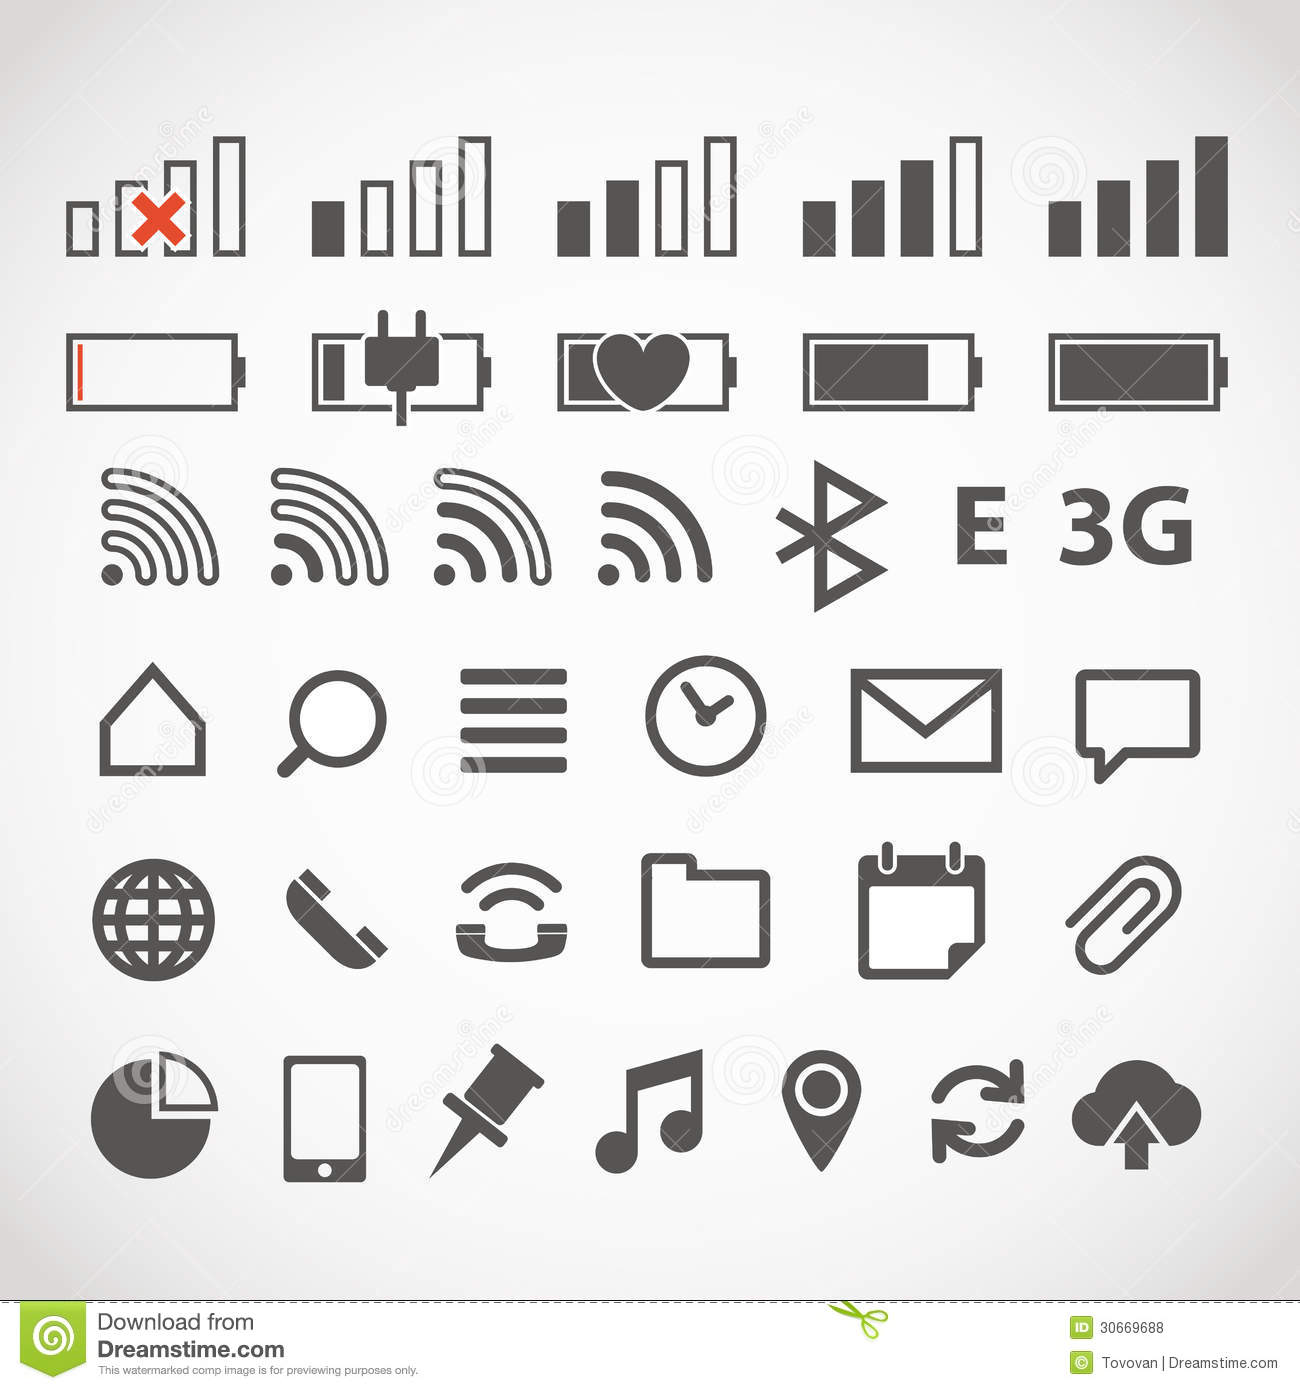 modern-gadget-web-icons-collection-30669688.jpg